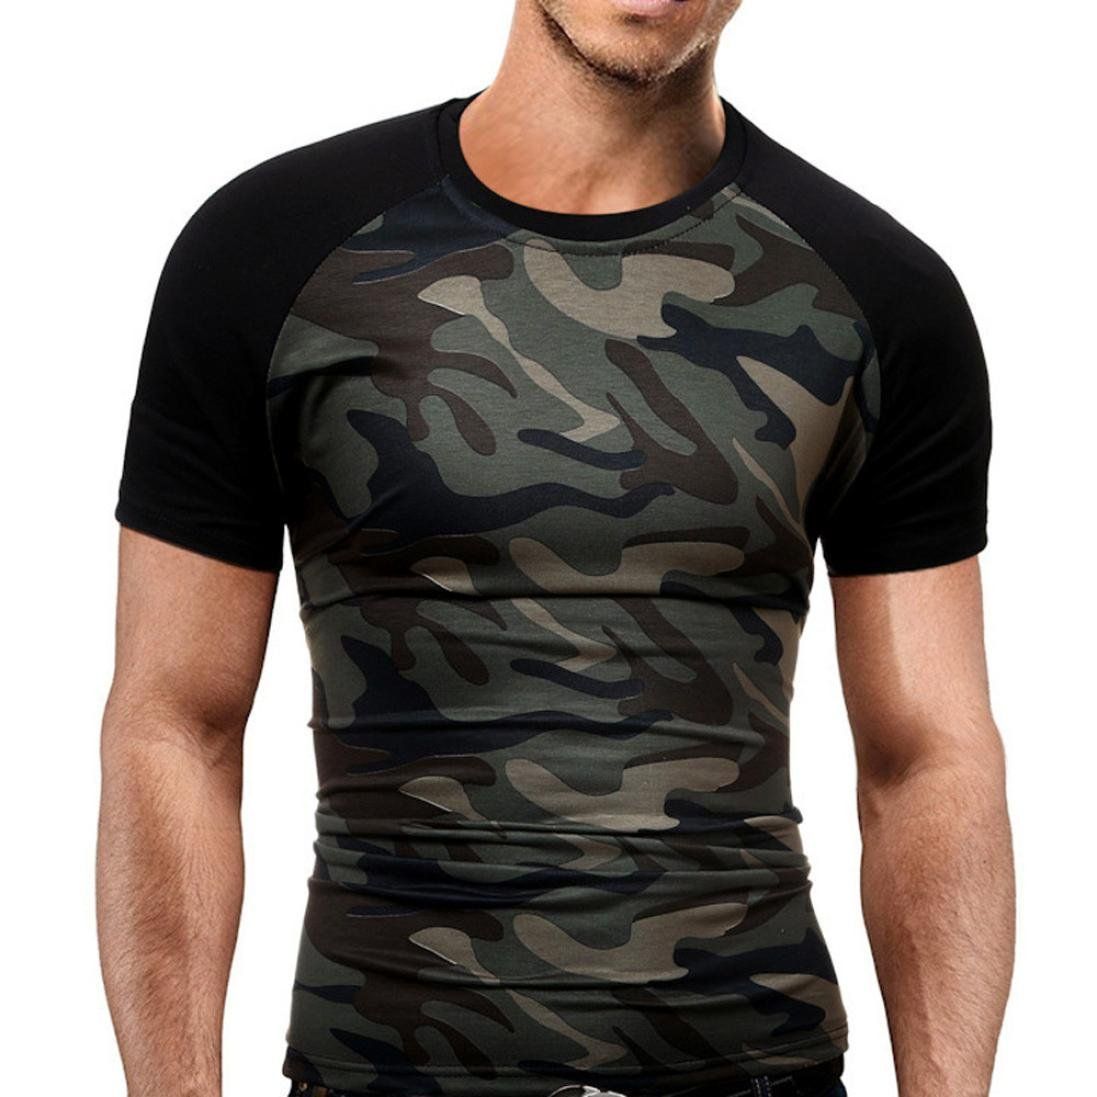 Sumen Men's Slim T-Shirt Military Camouflage O-Neck Short Sleeve Activewear